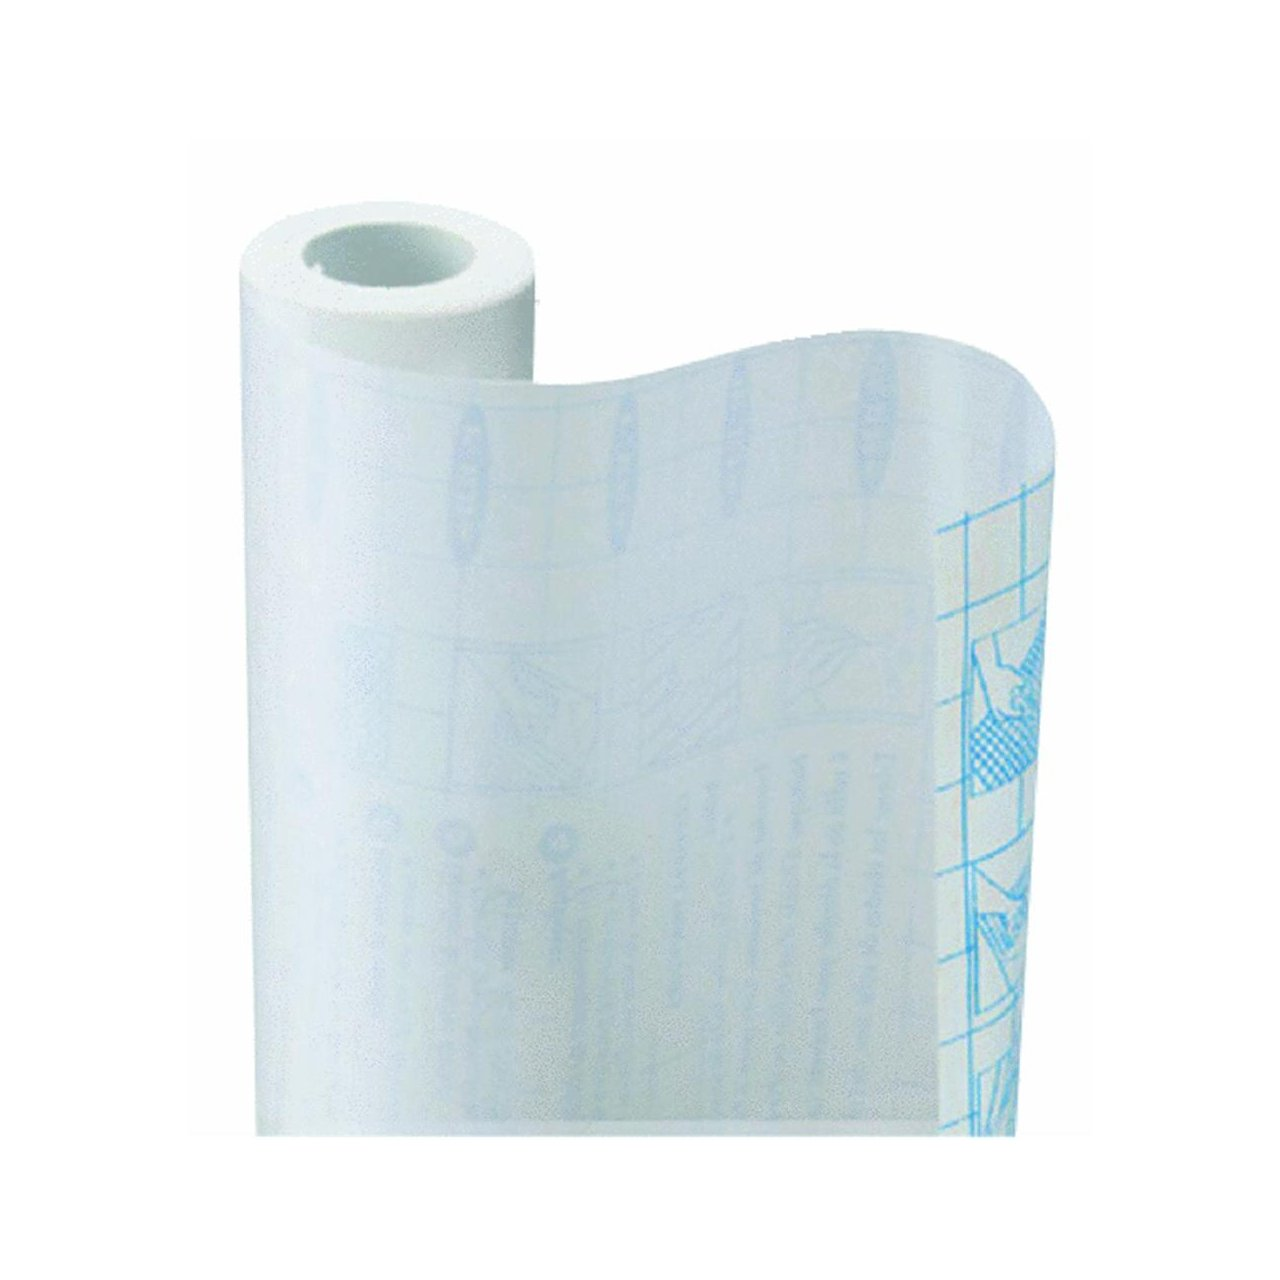 Amazon.com - Con-Tact Brand Clear Covering Self-Adhesive Privacy ...